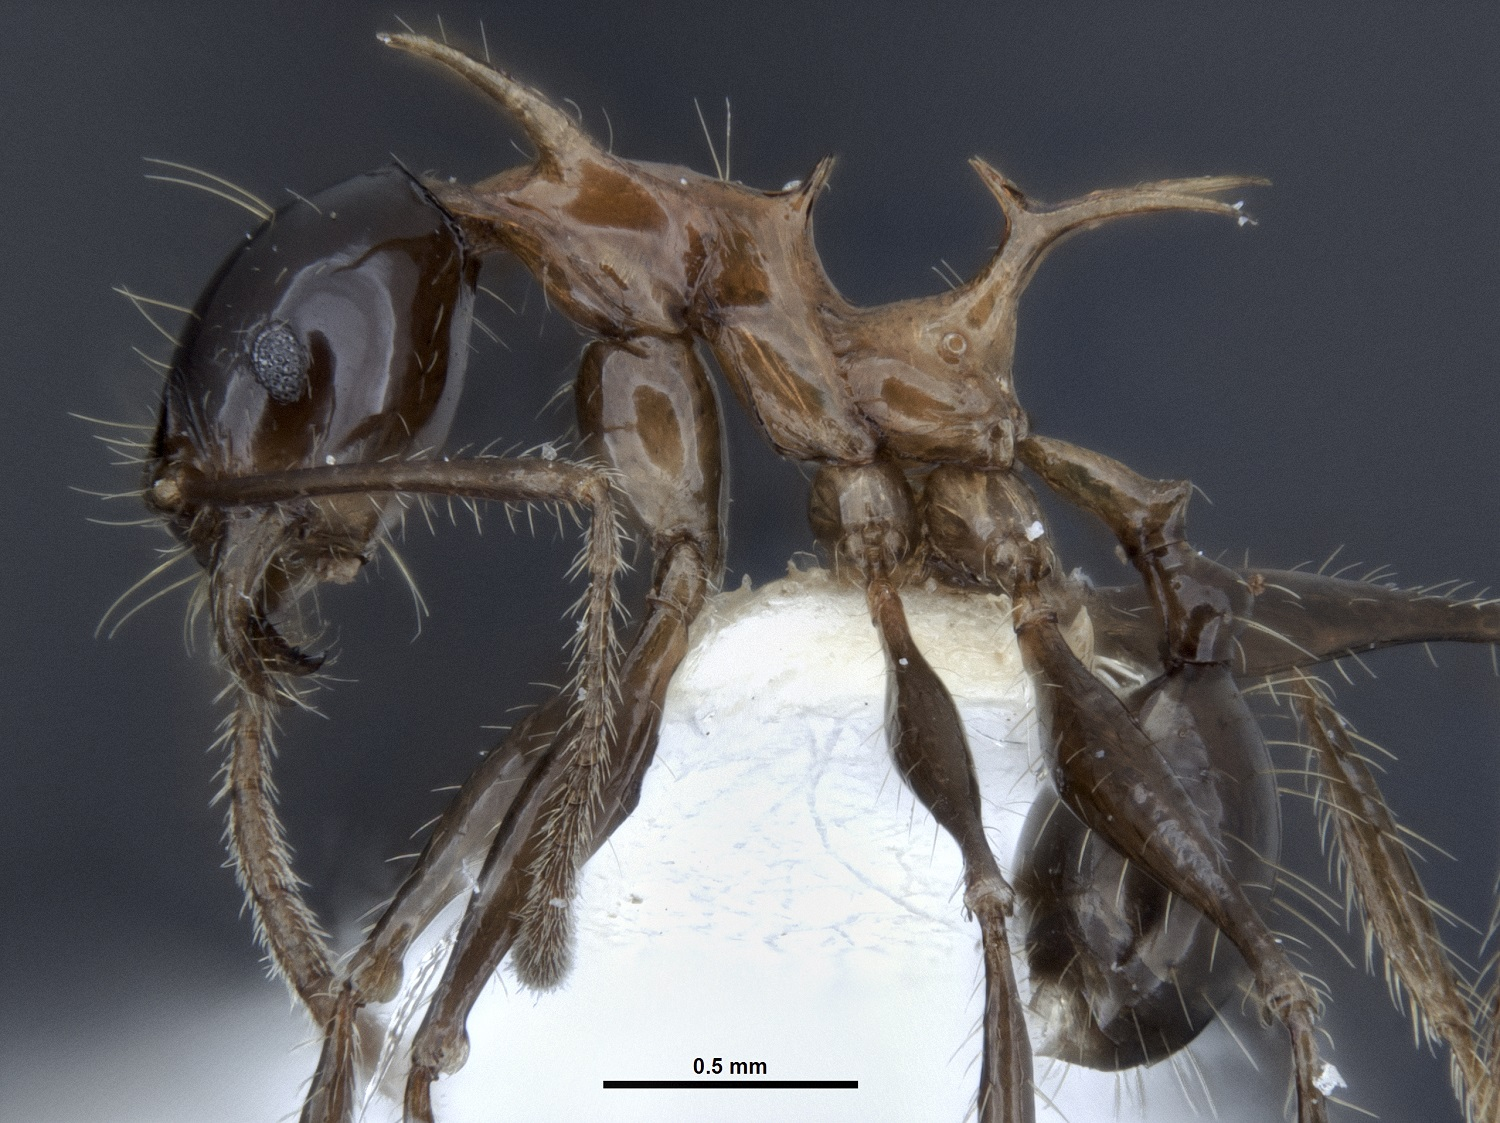 Pheidole-drogon-side-view.jpg